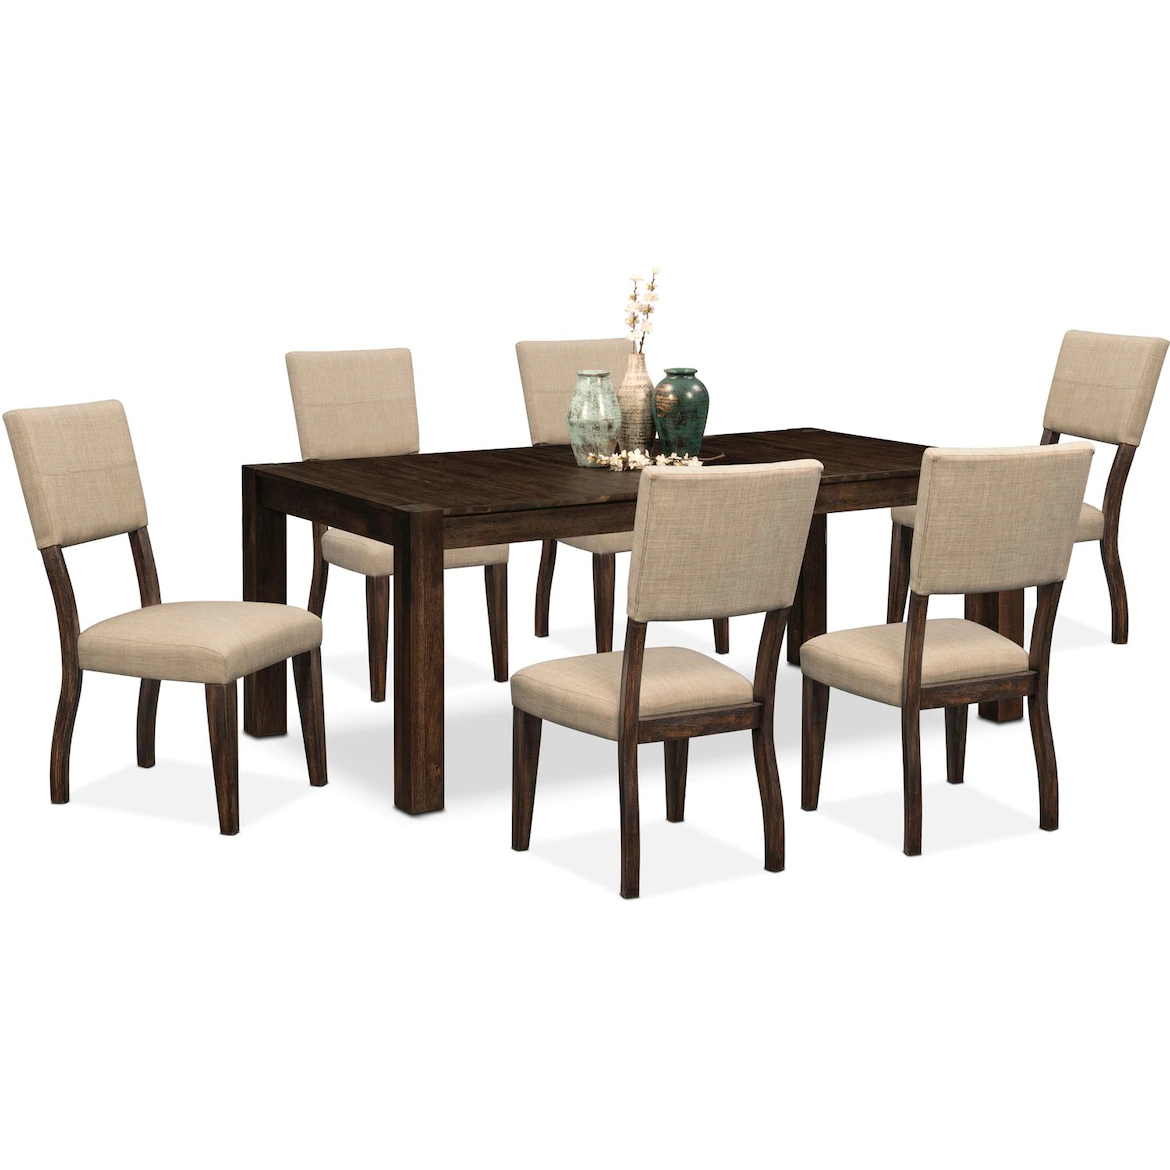 Tribeca Dining Table and 6 Upholstered Dining Chairs